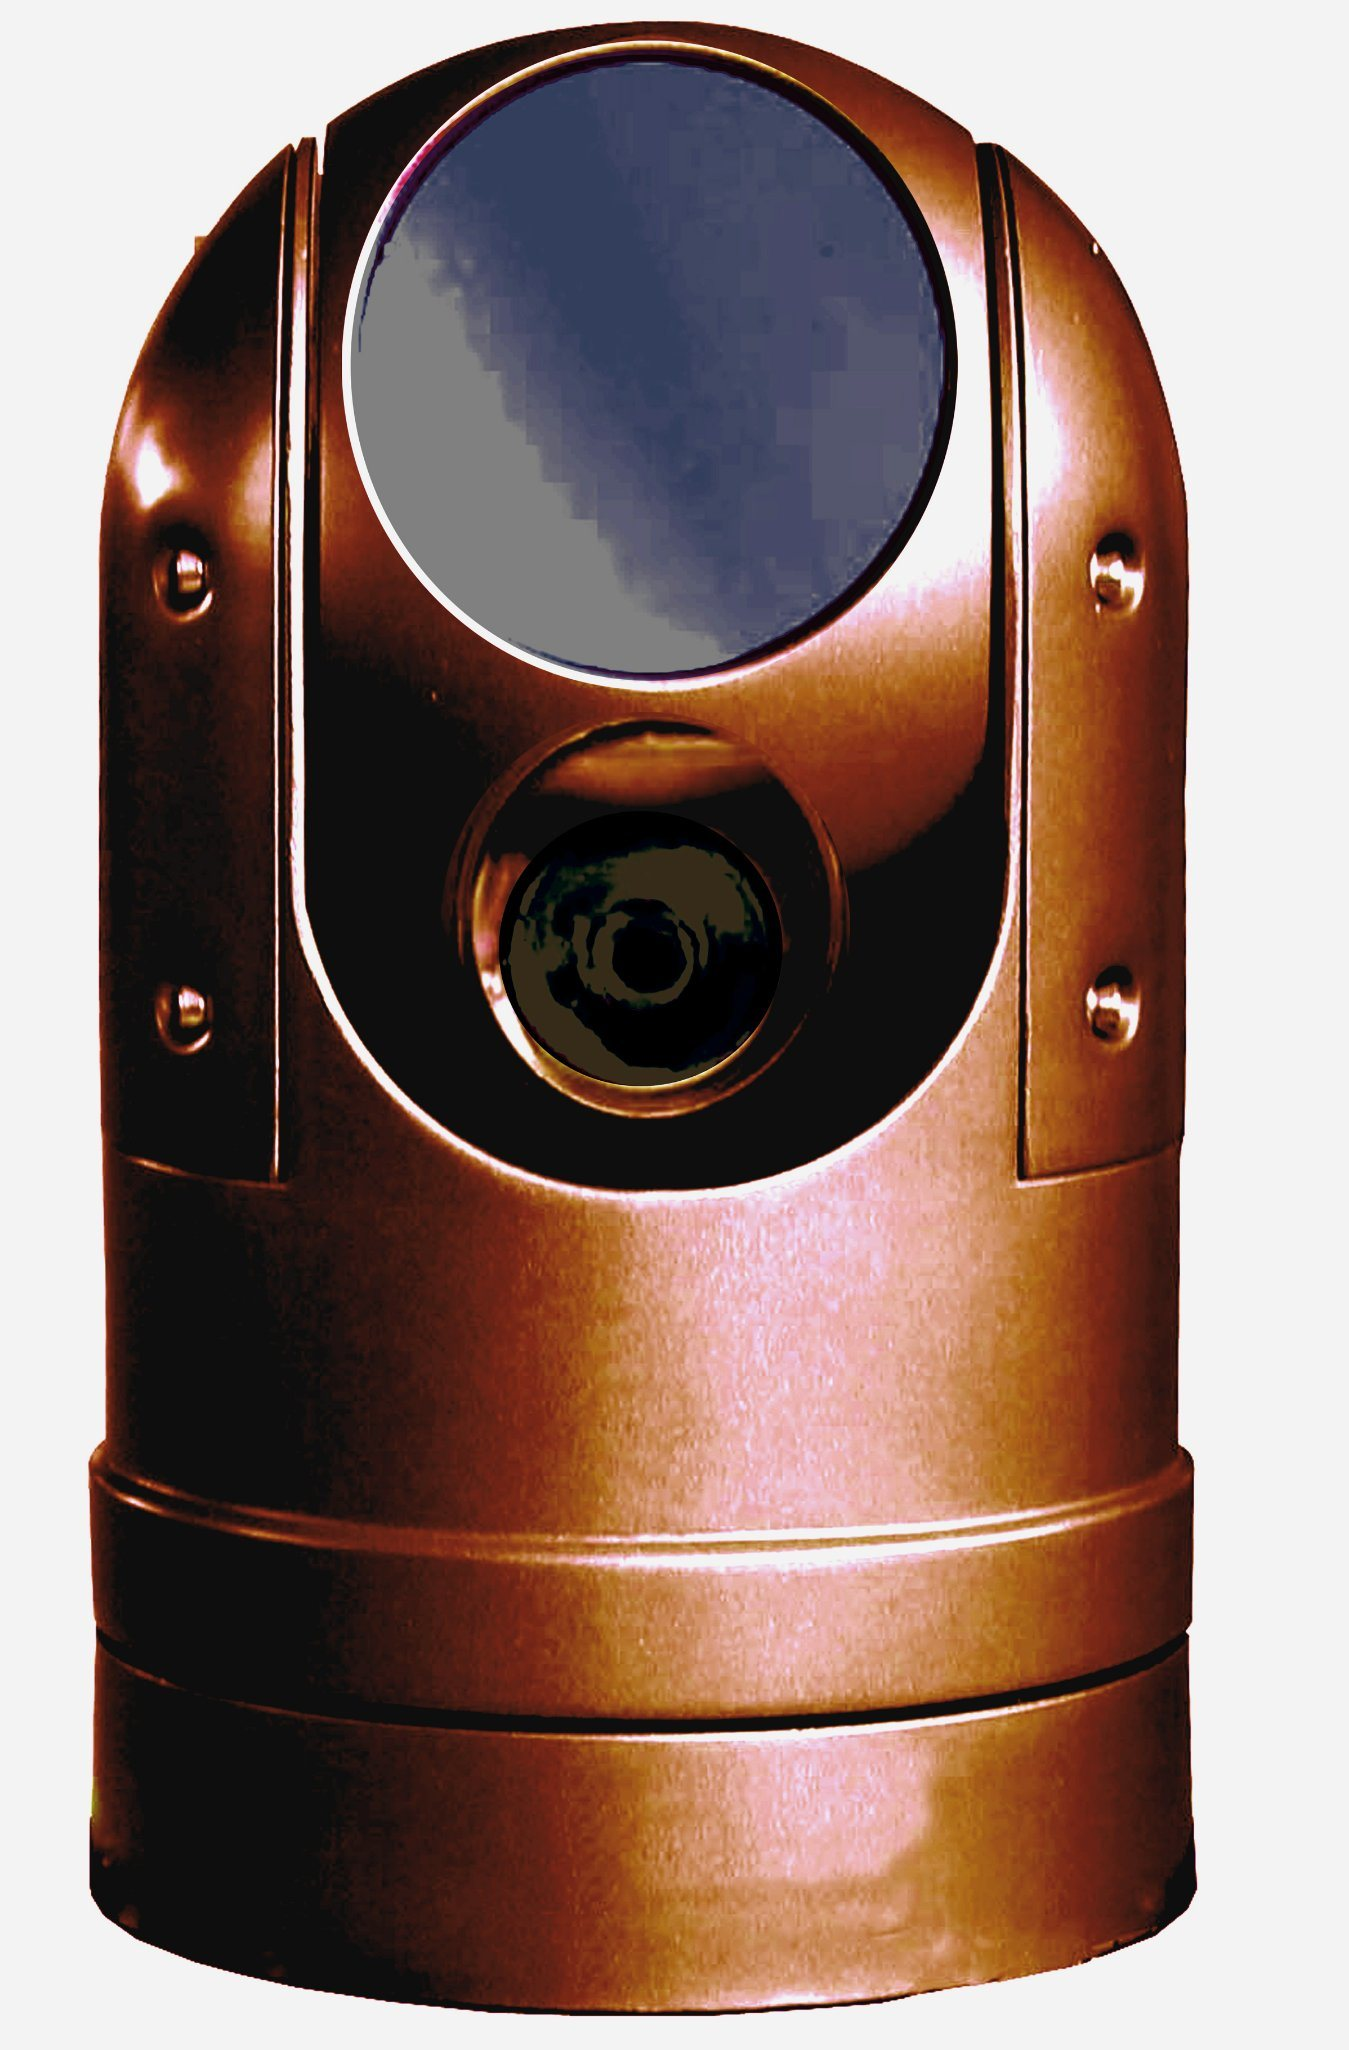 Outdoor Thermal PTZ Camera, with 100mm Upto 3km Detection